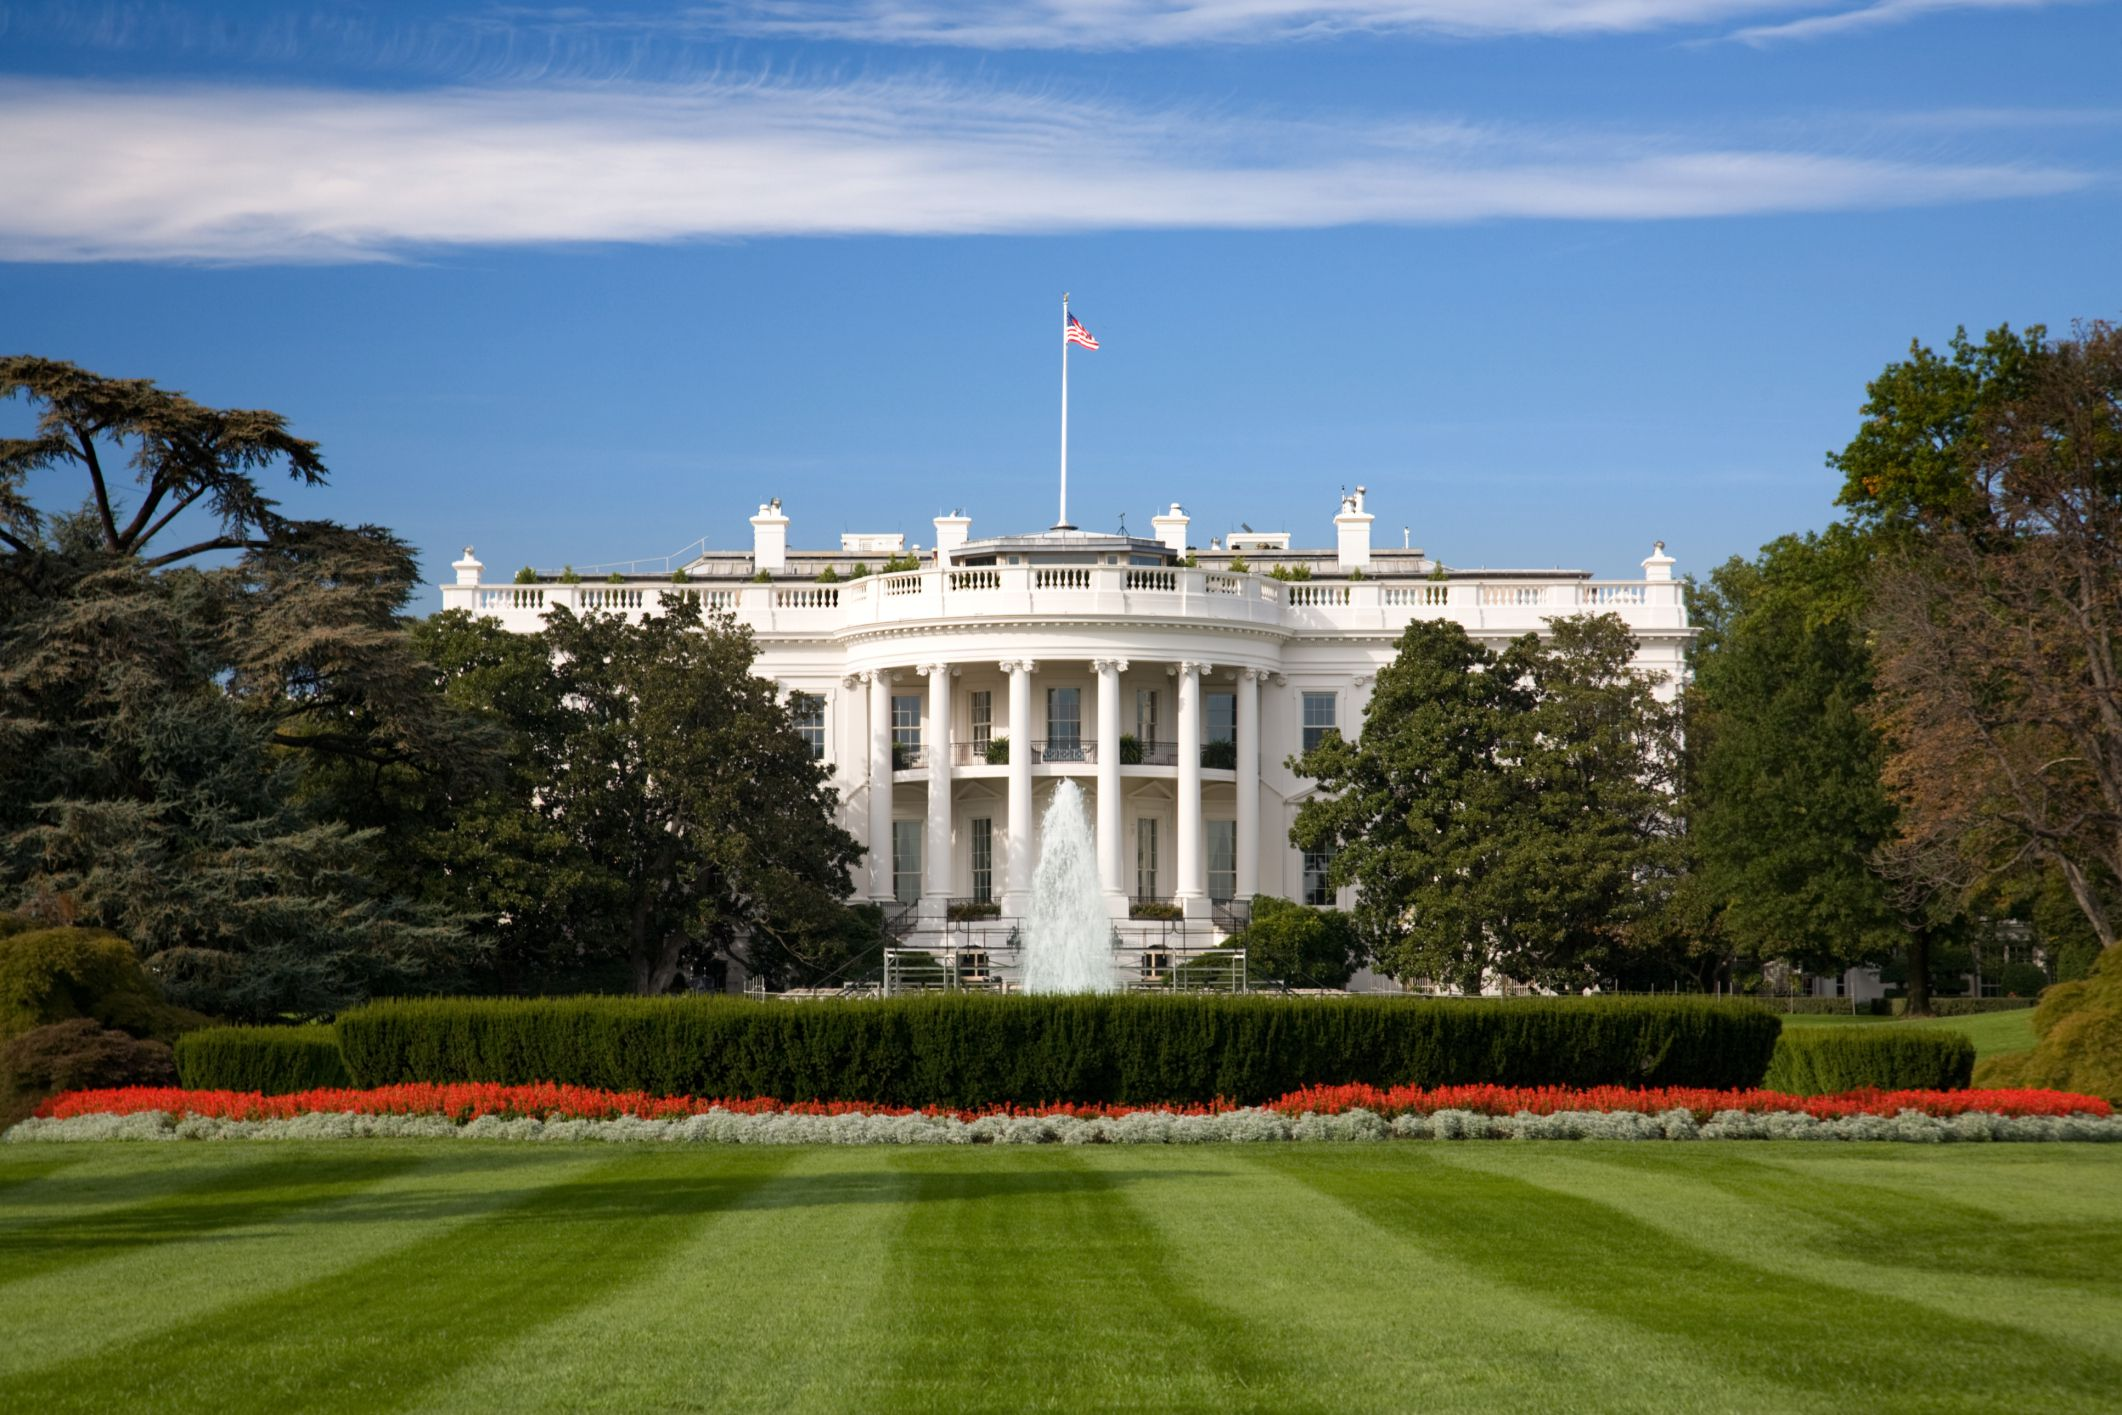 Pictures of the new white house